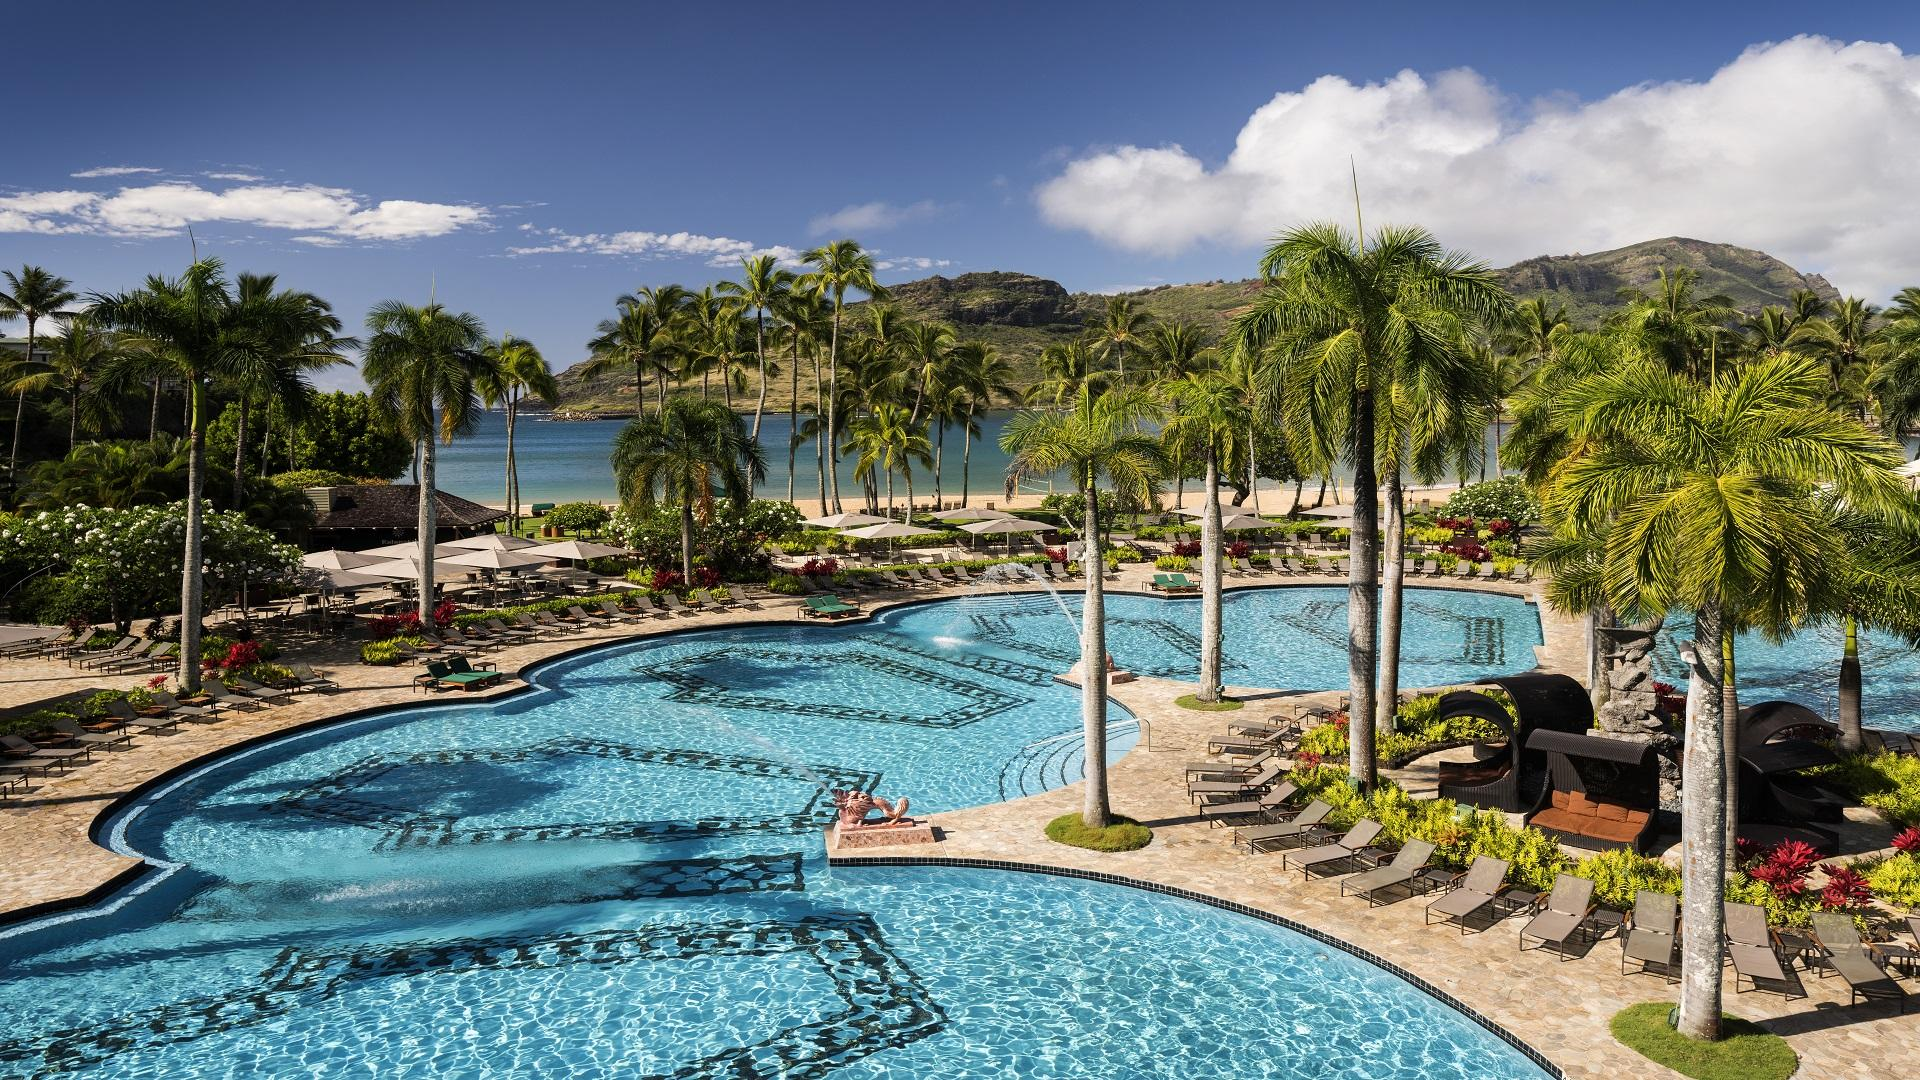 With dramatic water features and ample room for every guest, our Kauai beach hotel offers an amazing Hawaiian vacation.